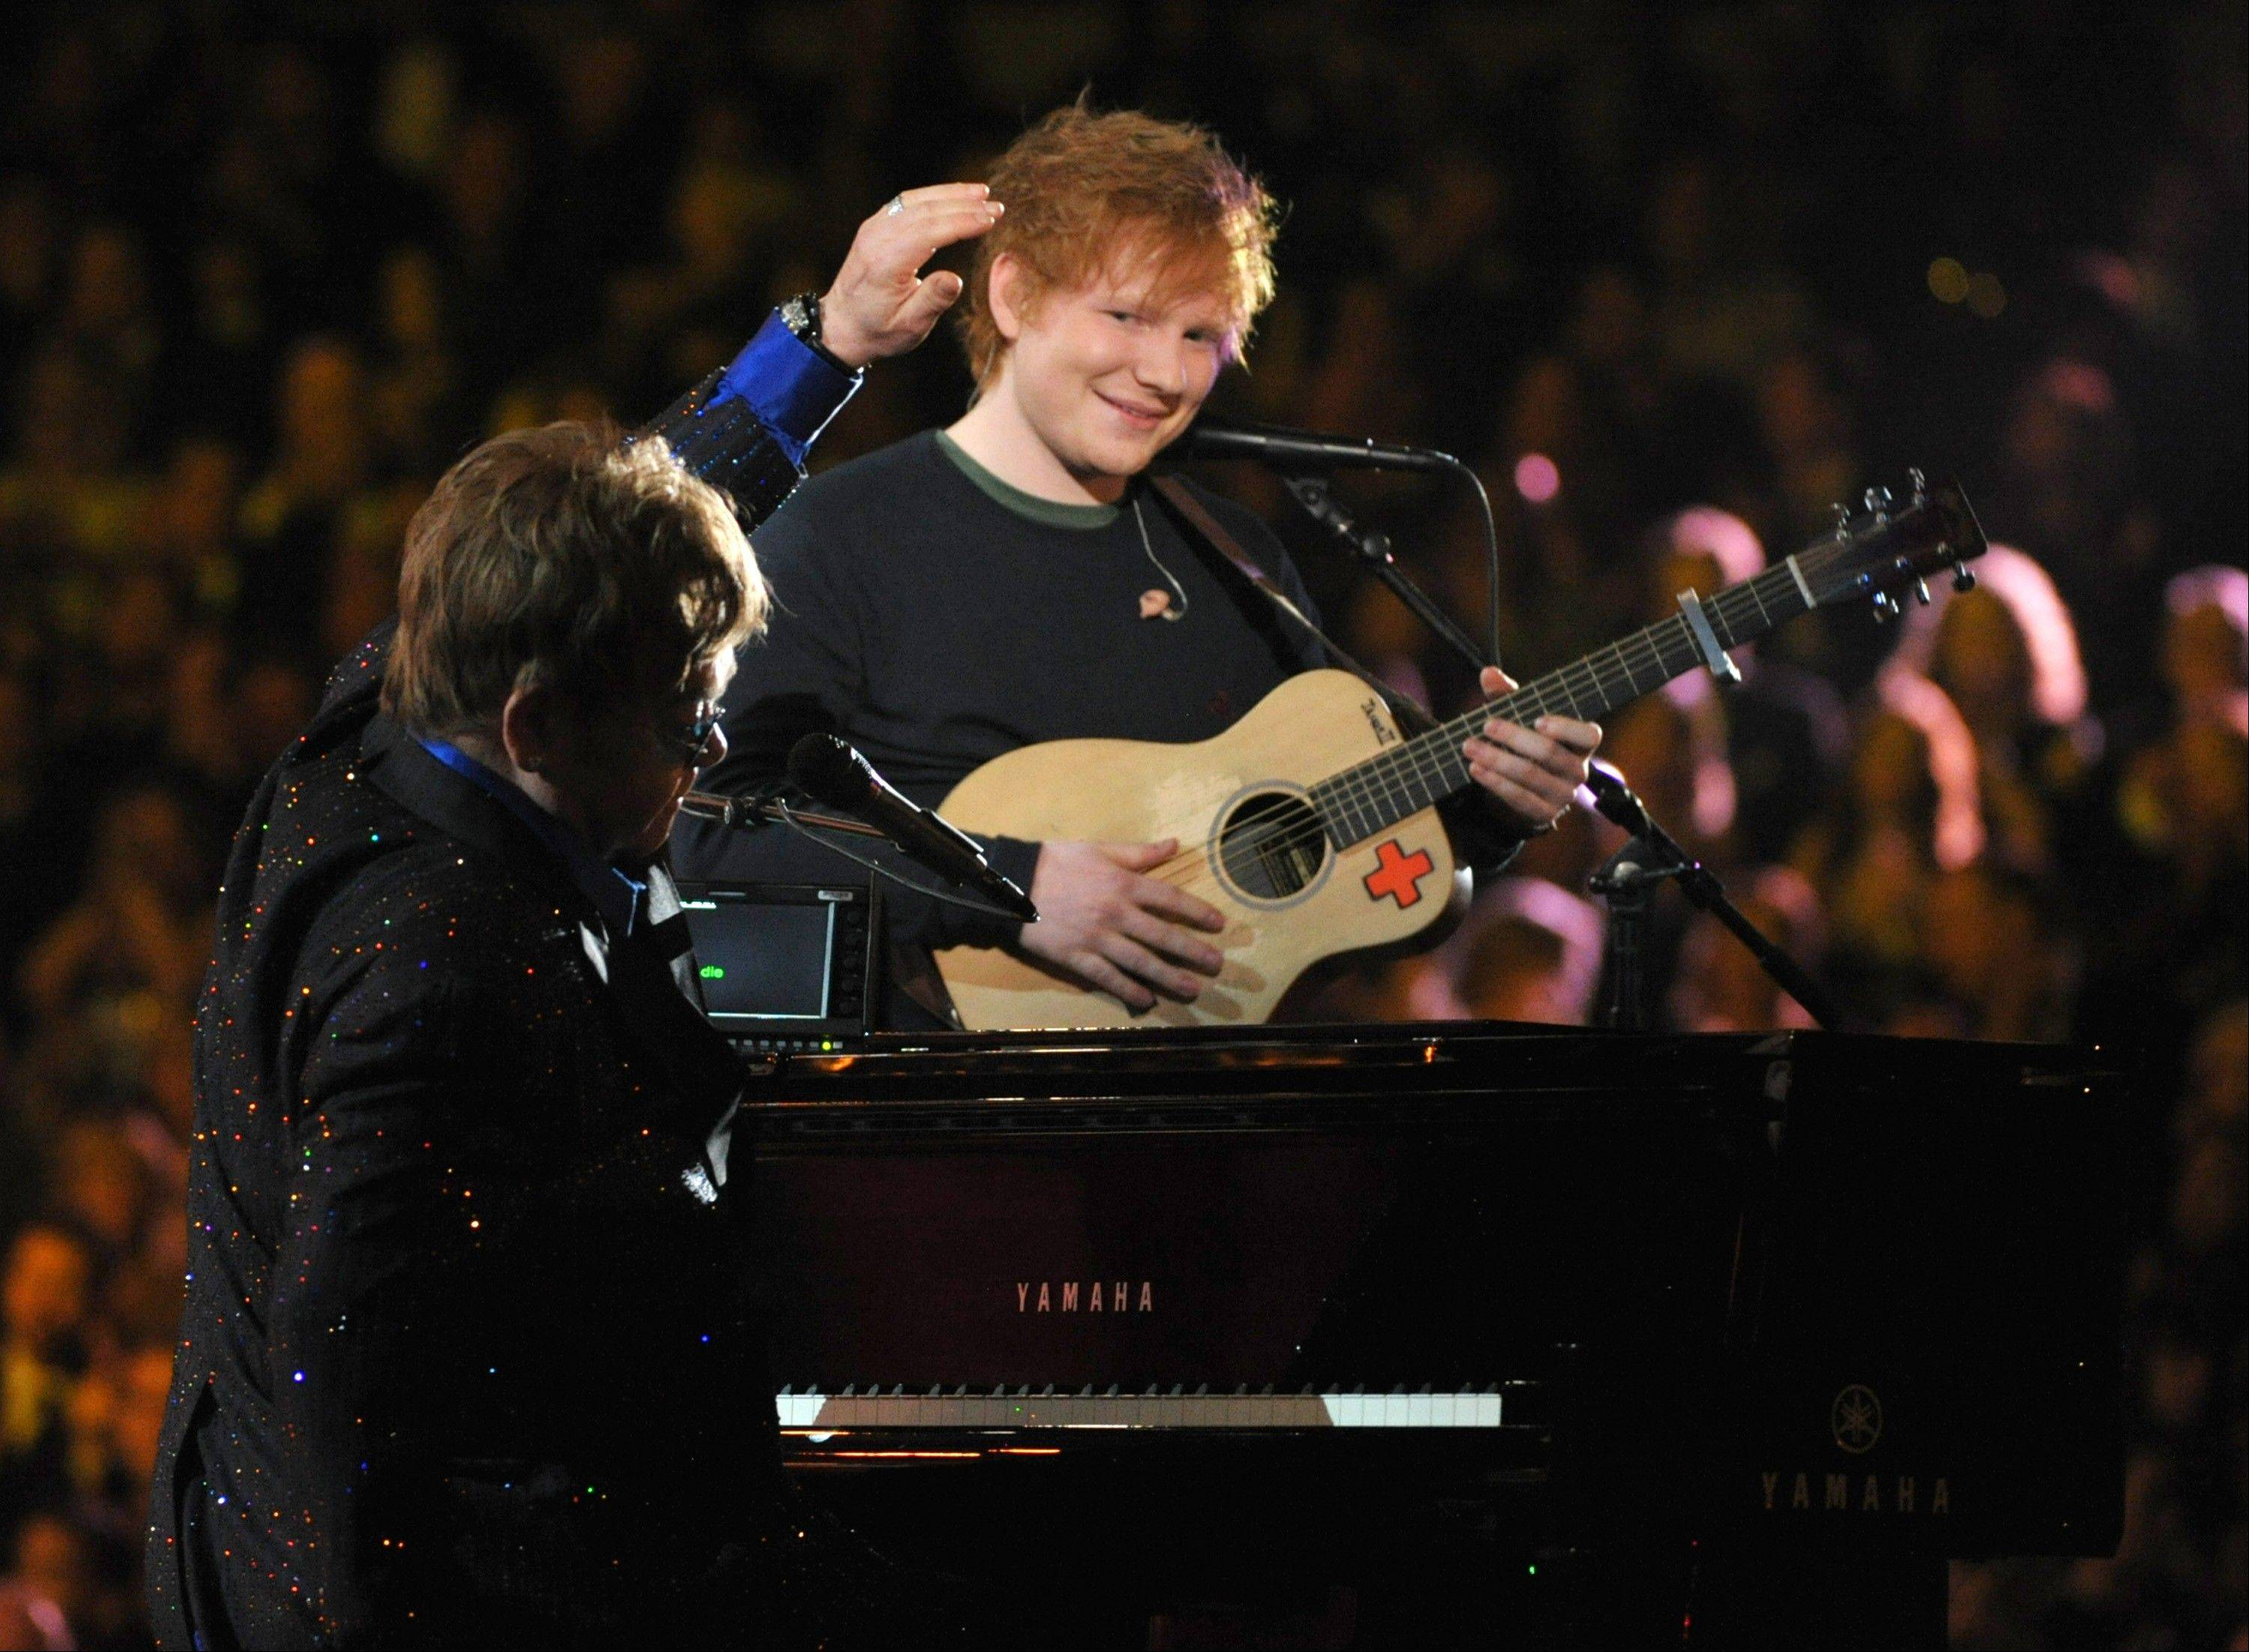 Sir Elton John, left, and Ed Sheeran perform on stage at the 55th annual Grammy Awards on Sunday, Feb. 10, 2013, in Los Angeles.